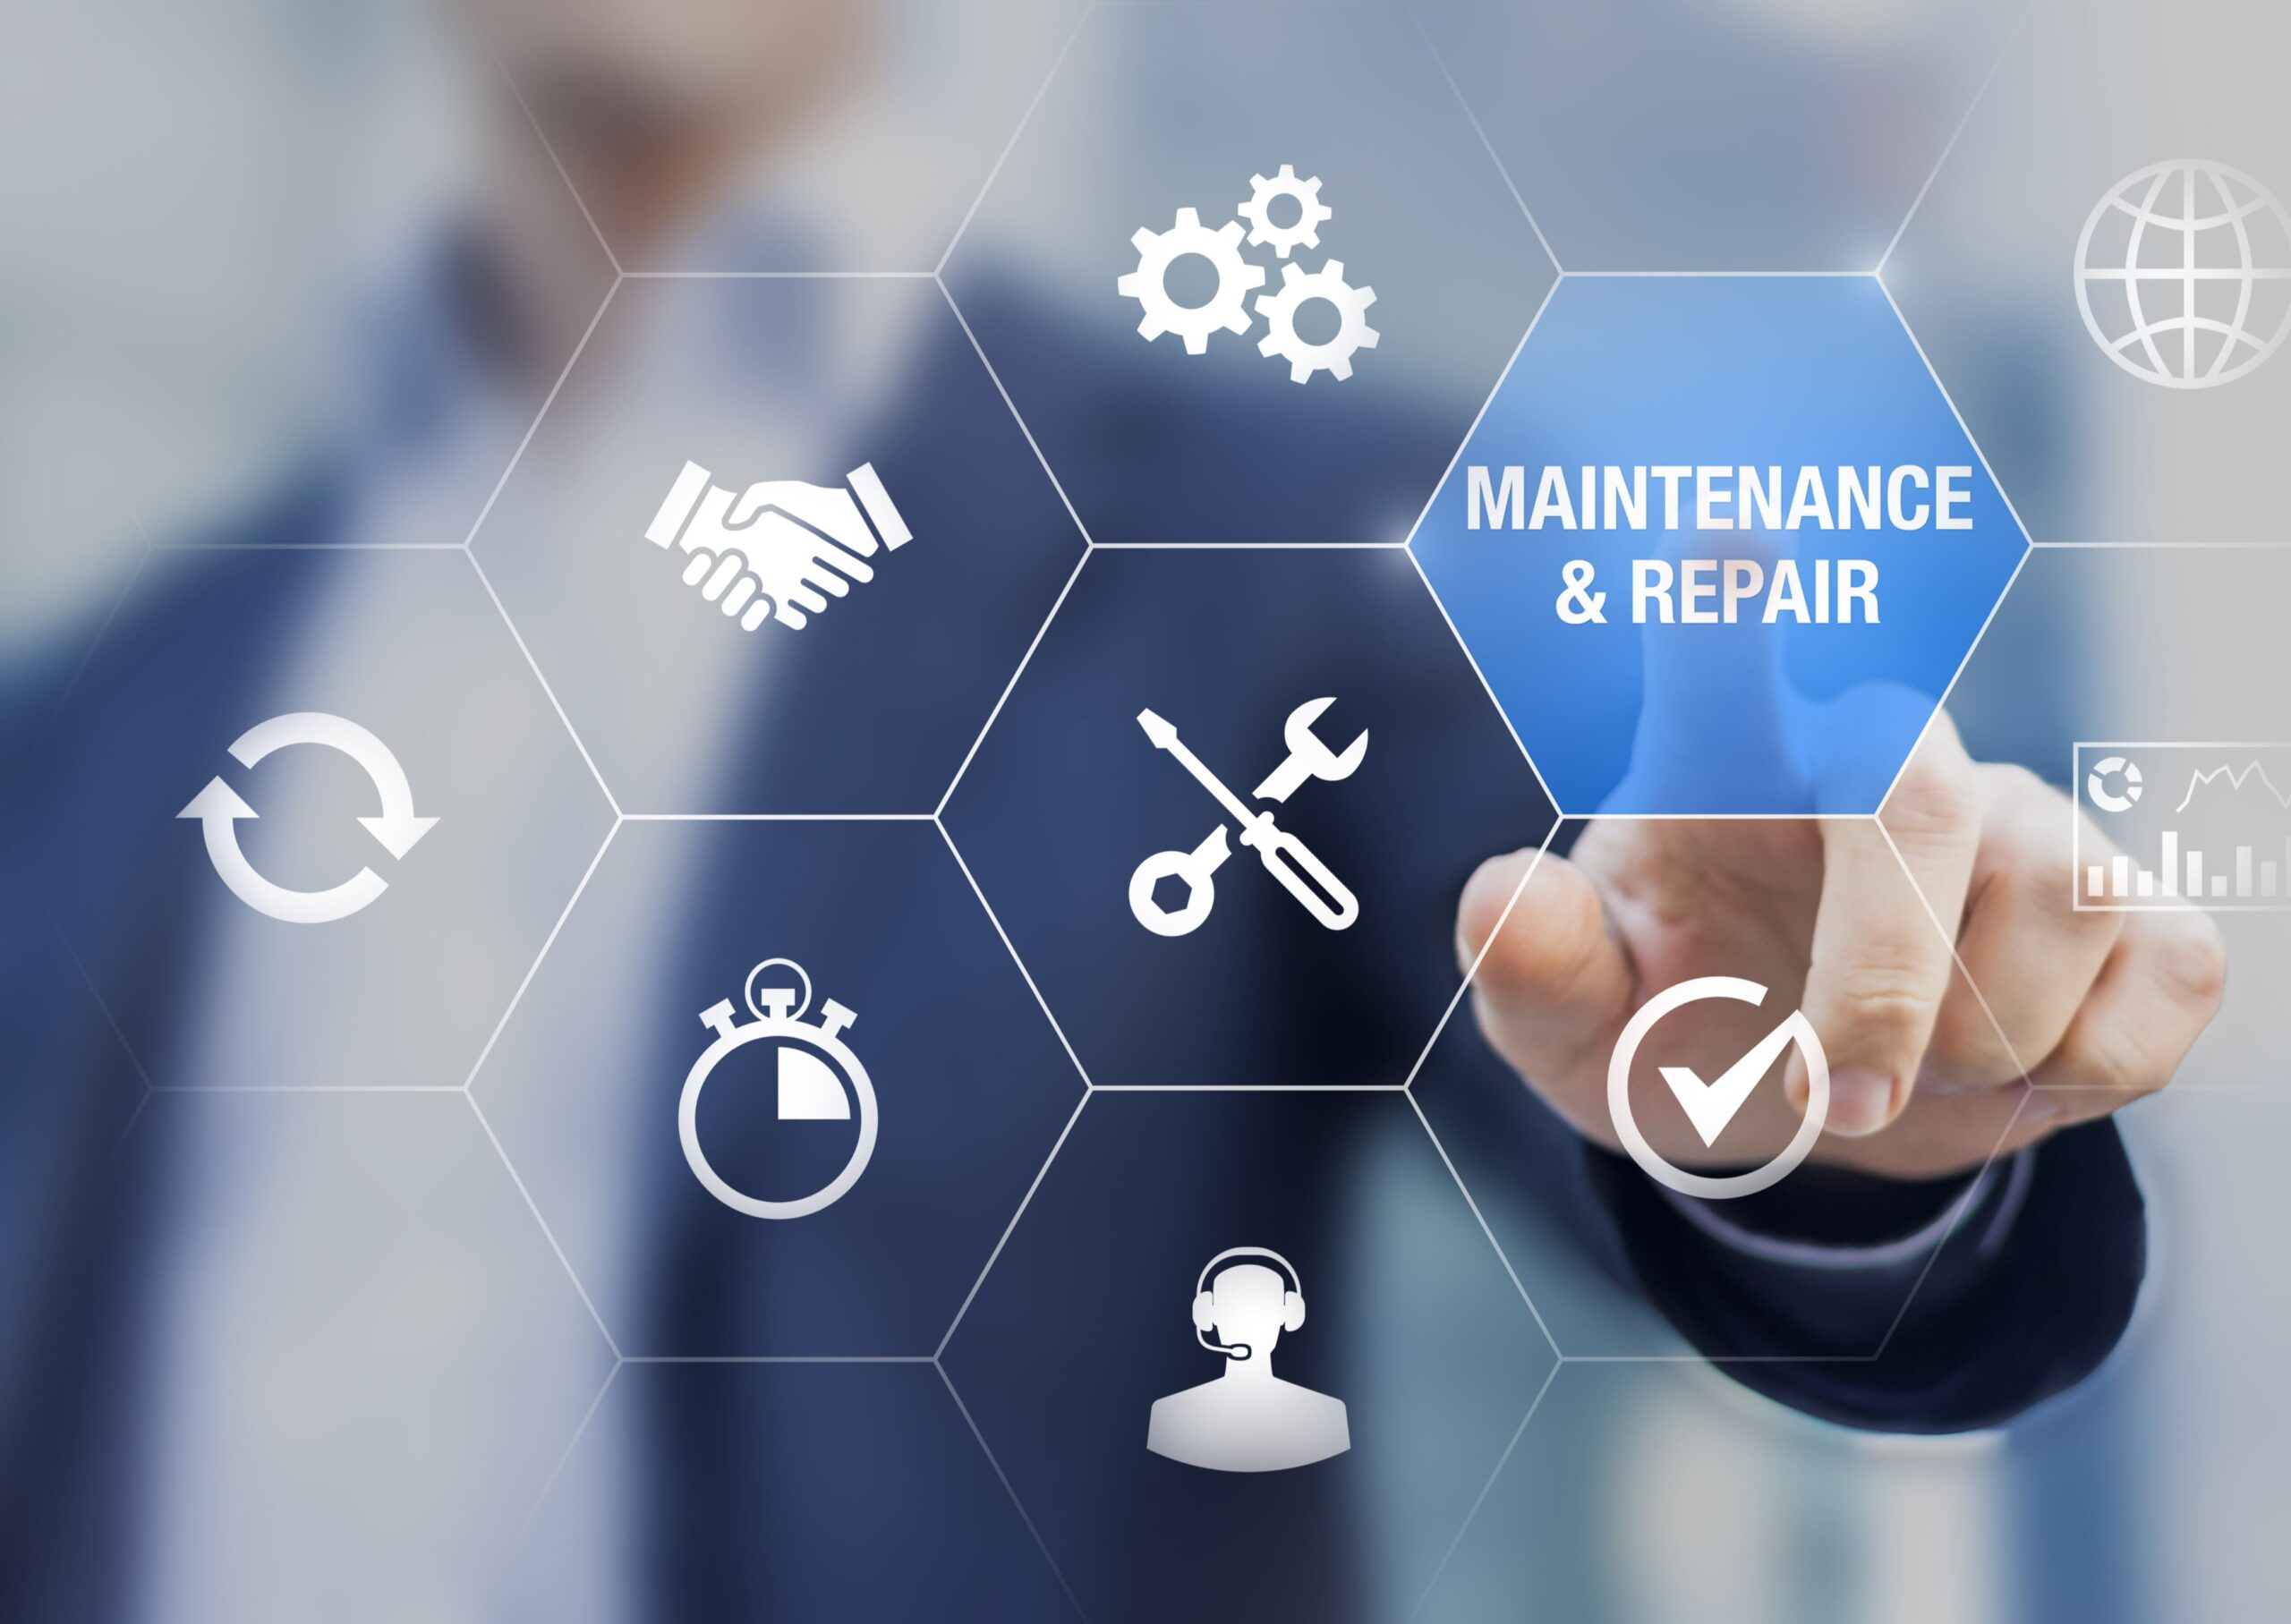 How to improve building maintenance quality while lowering costs